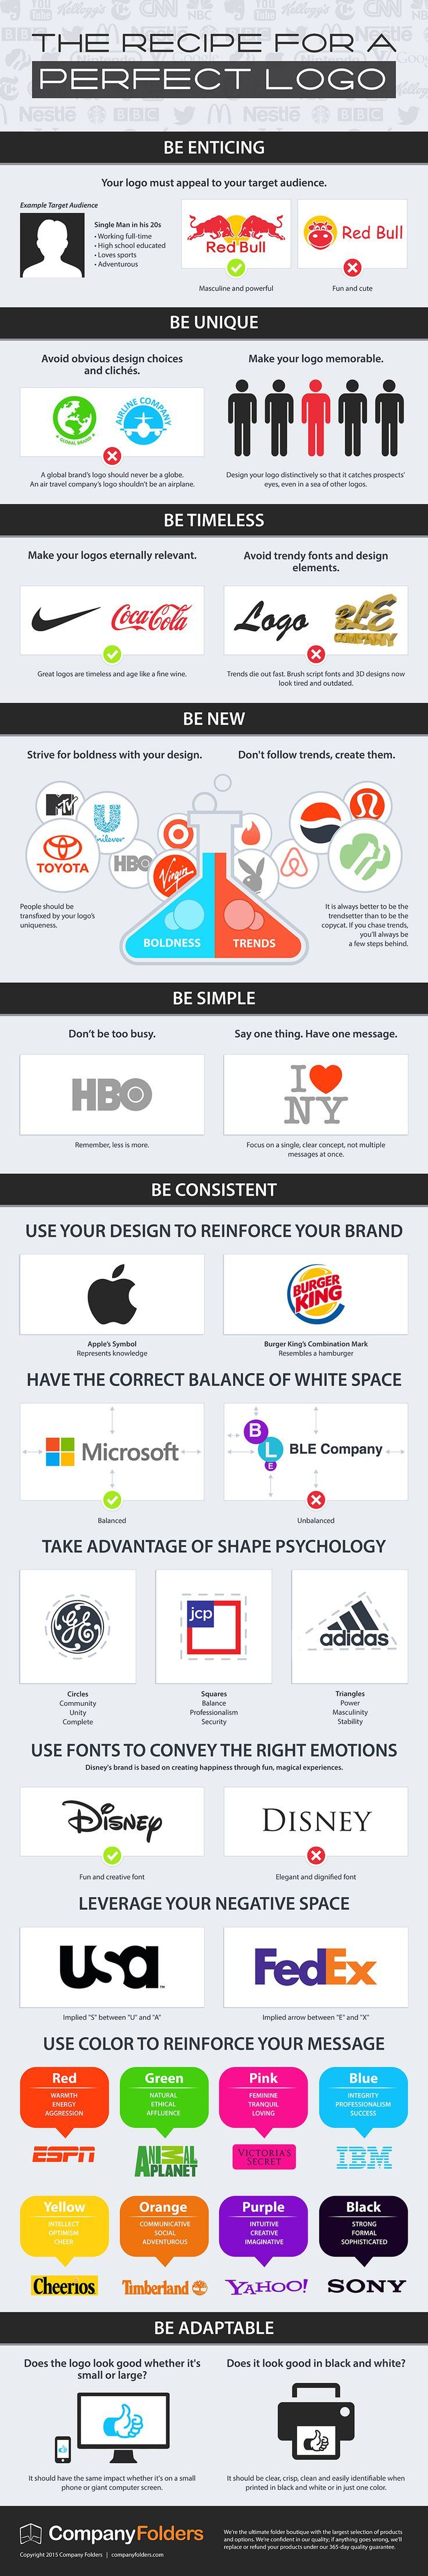 The Recipe For The Perfect Logo [Infographic] | Daily Infographic